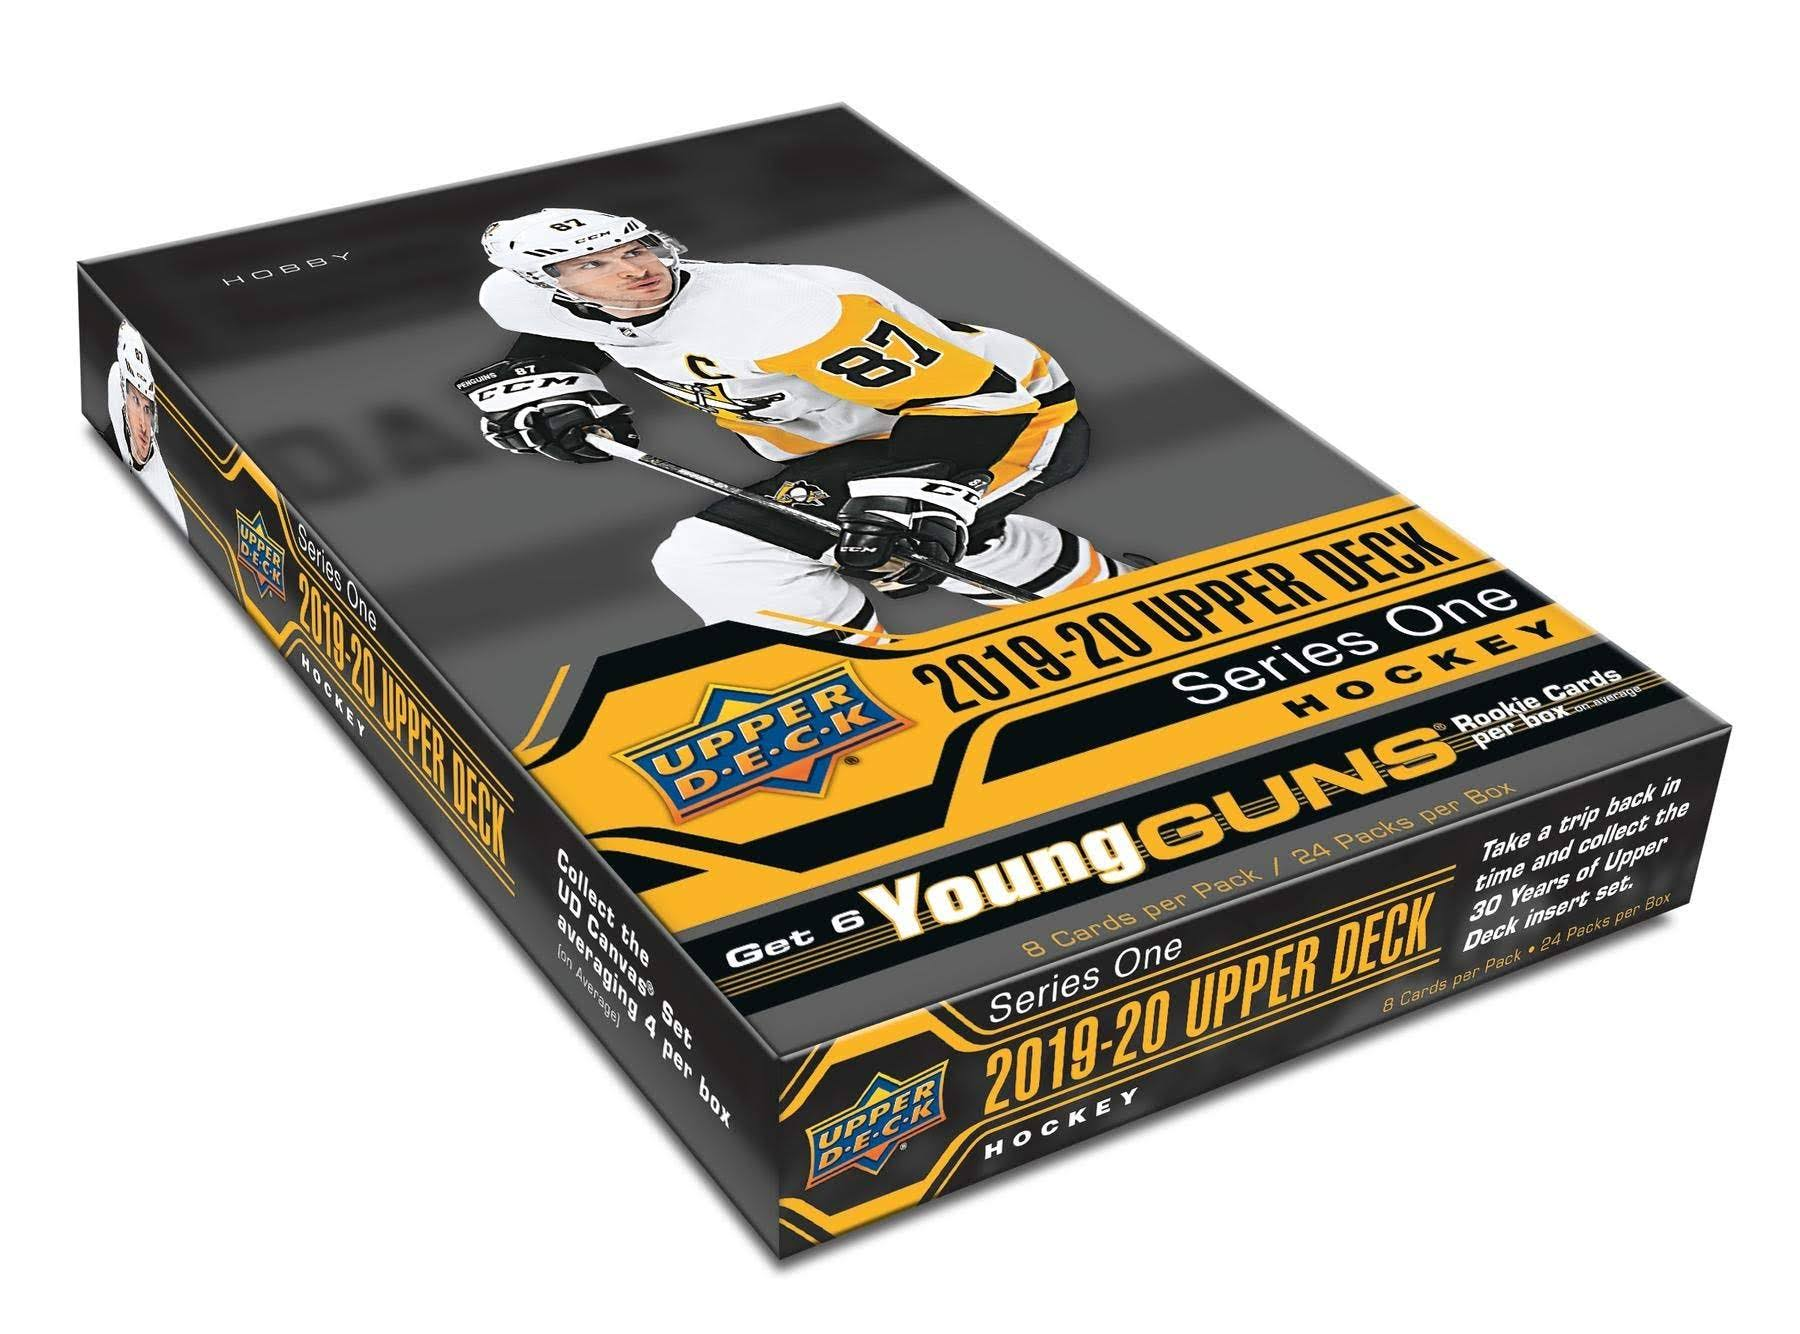 Upper Deck Series 1 Hobby Hockey Card